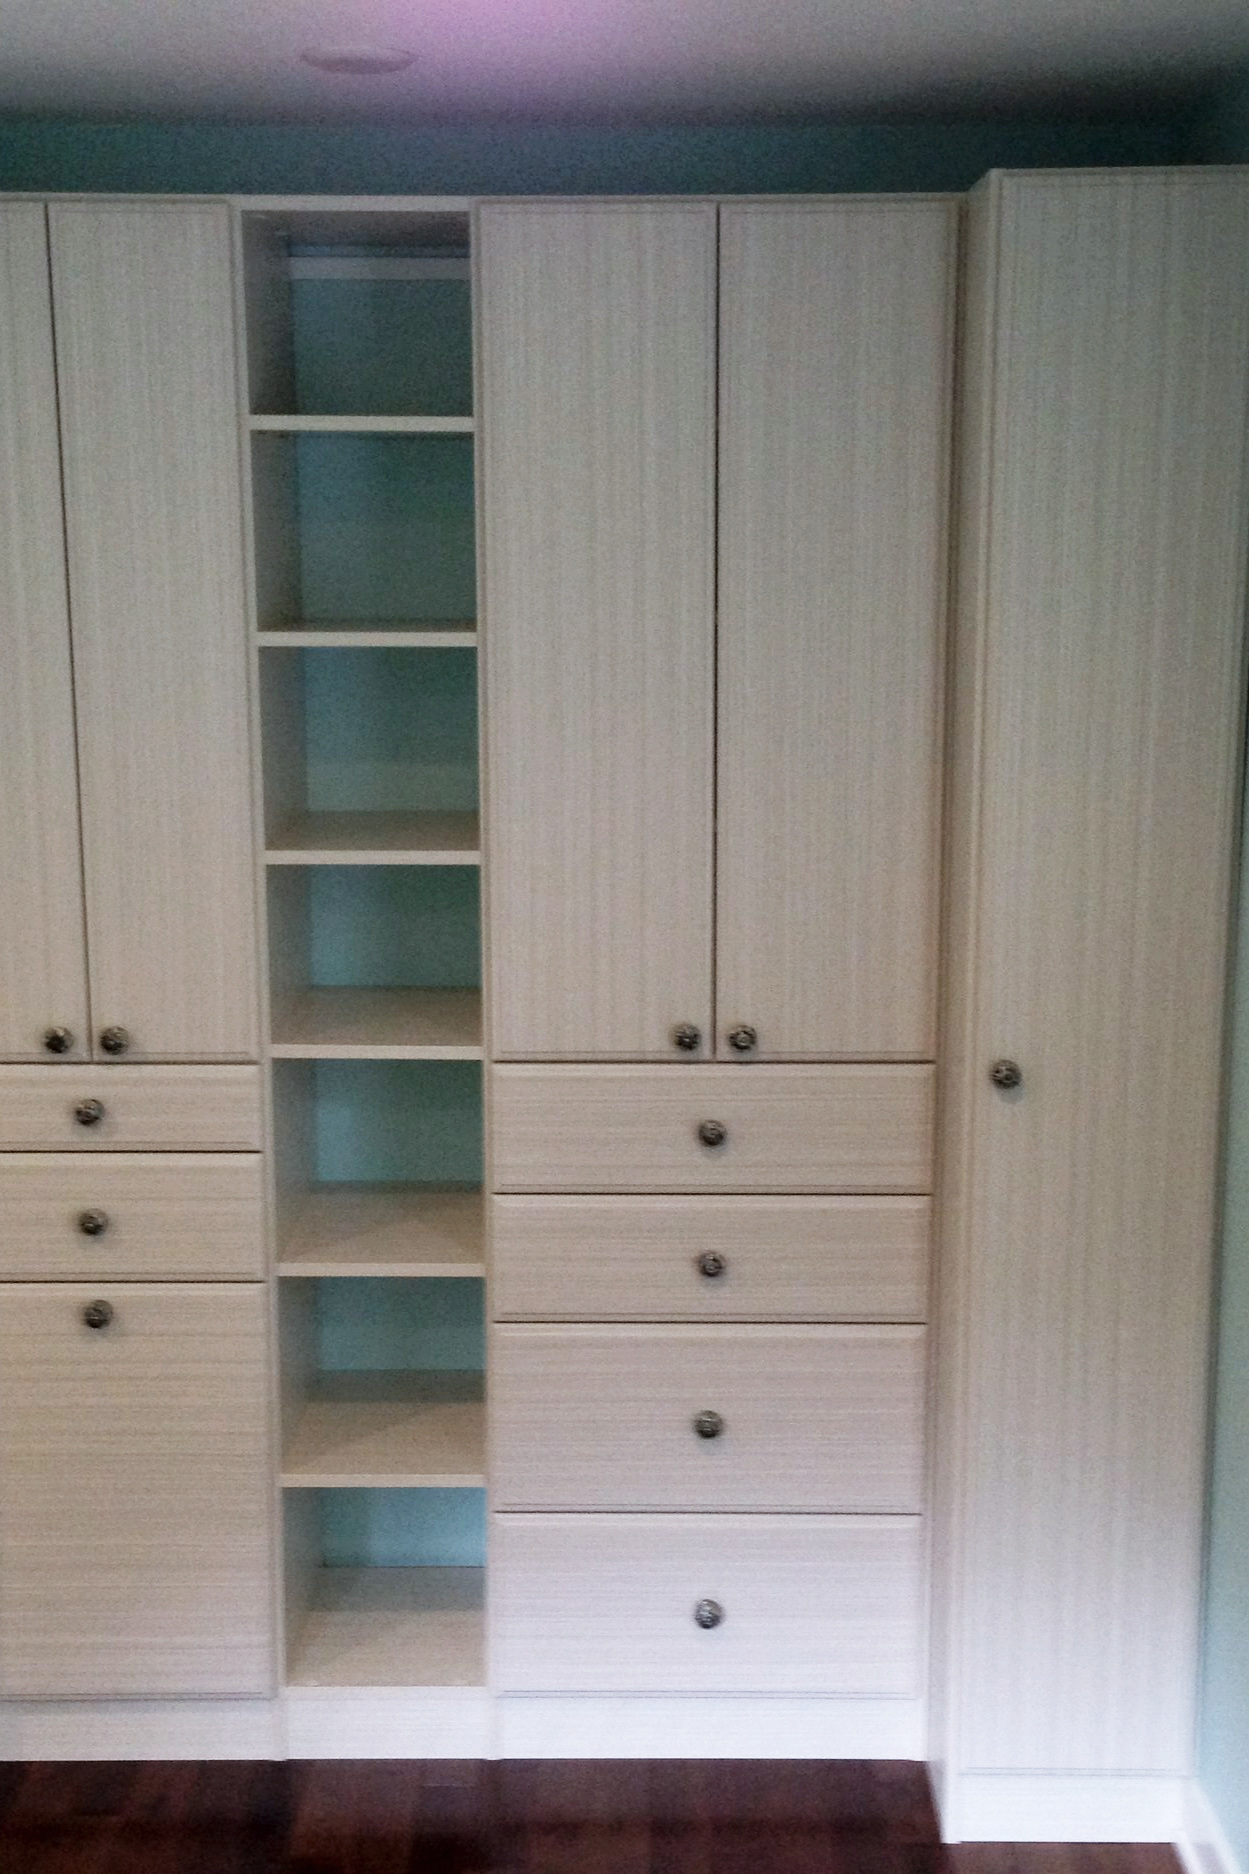 White chocolate textured finish wardrobe wall system with shelving, cabinets and drawers.